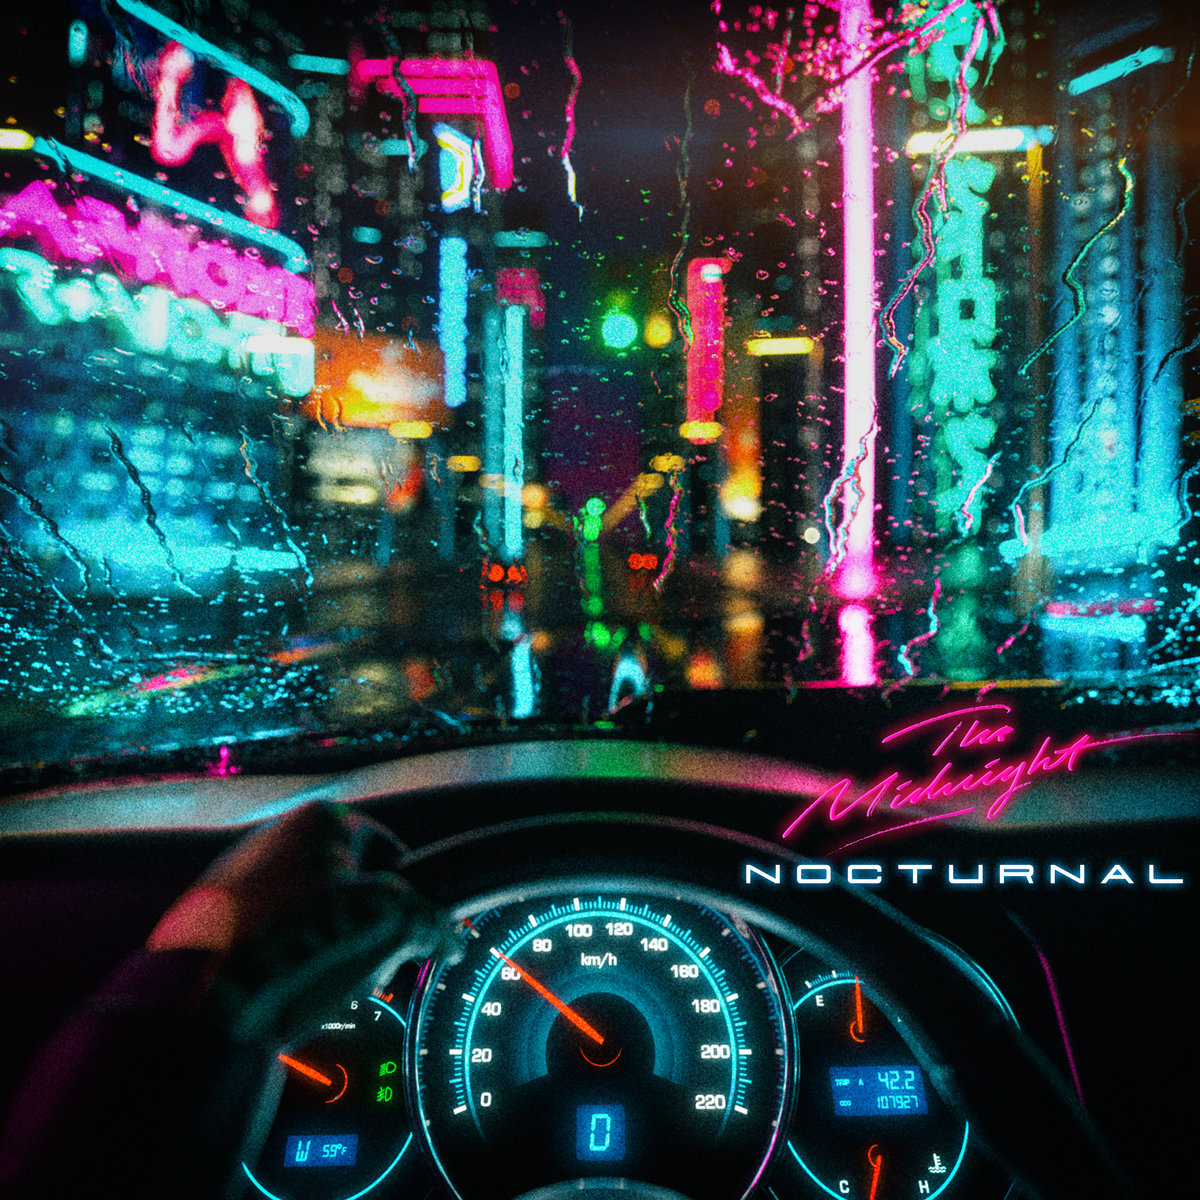 Nocturnal | The Midnight